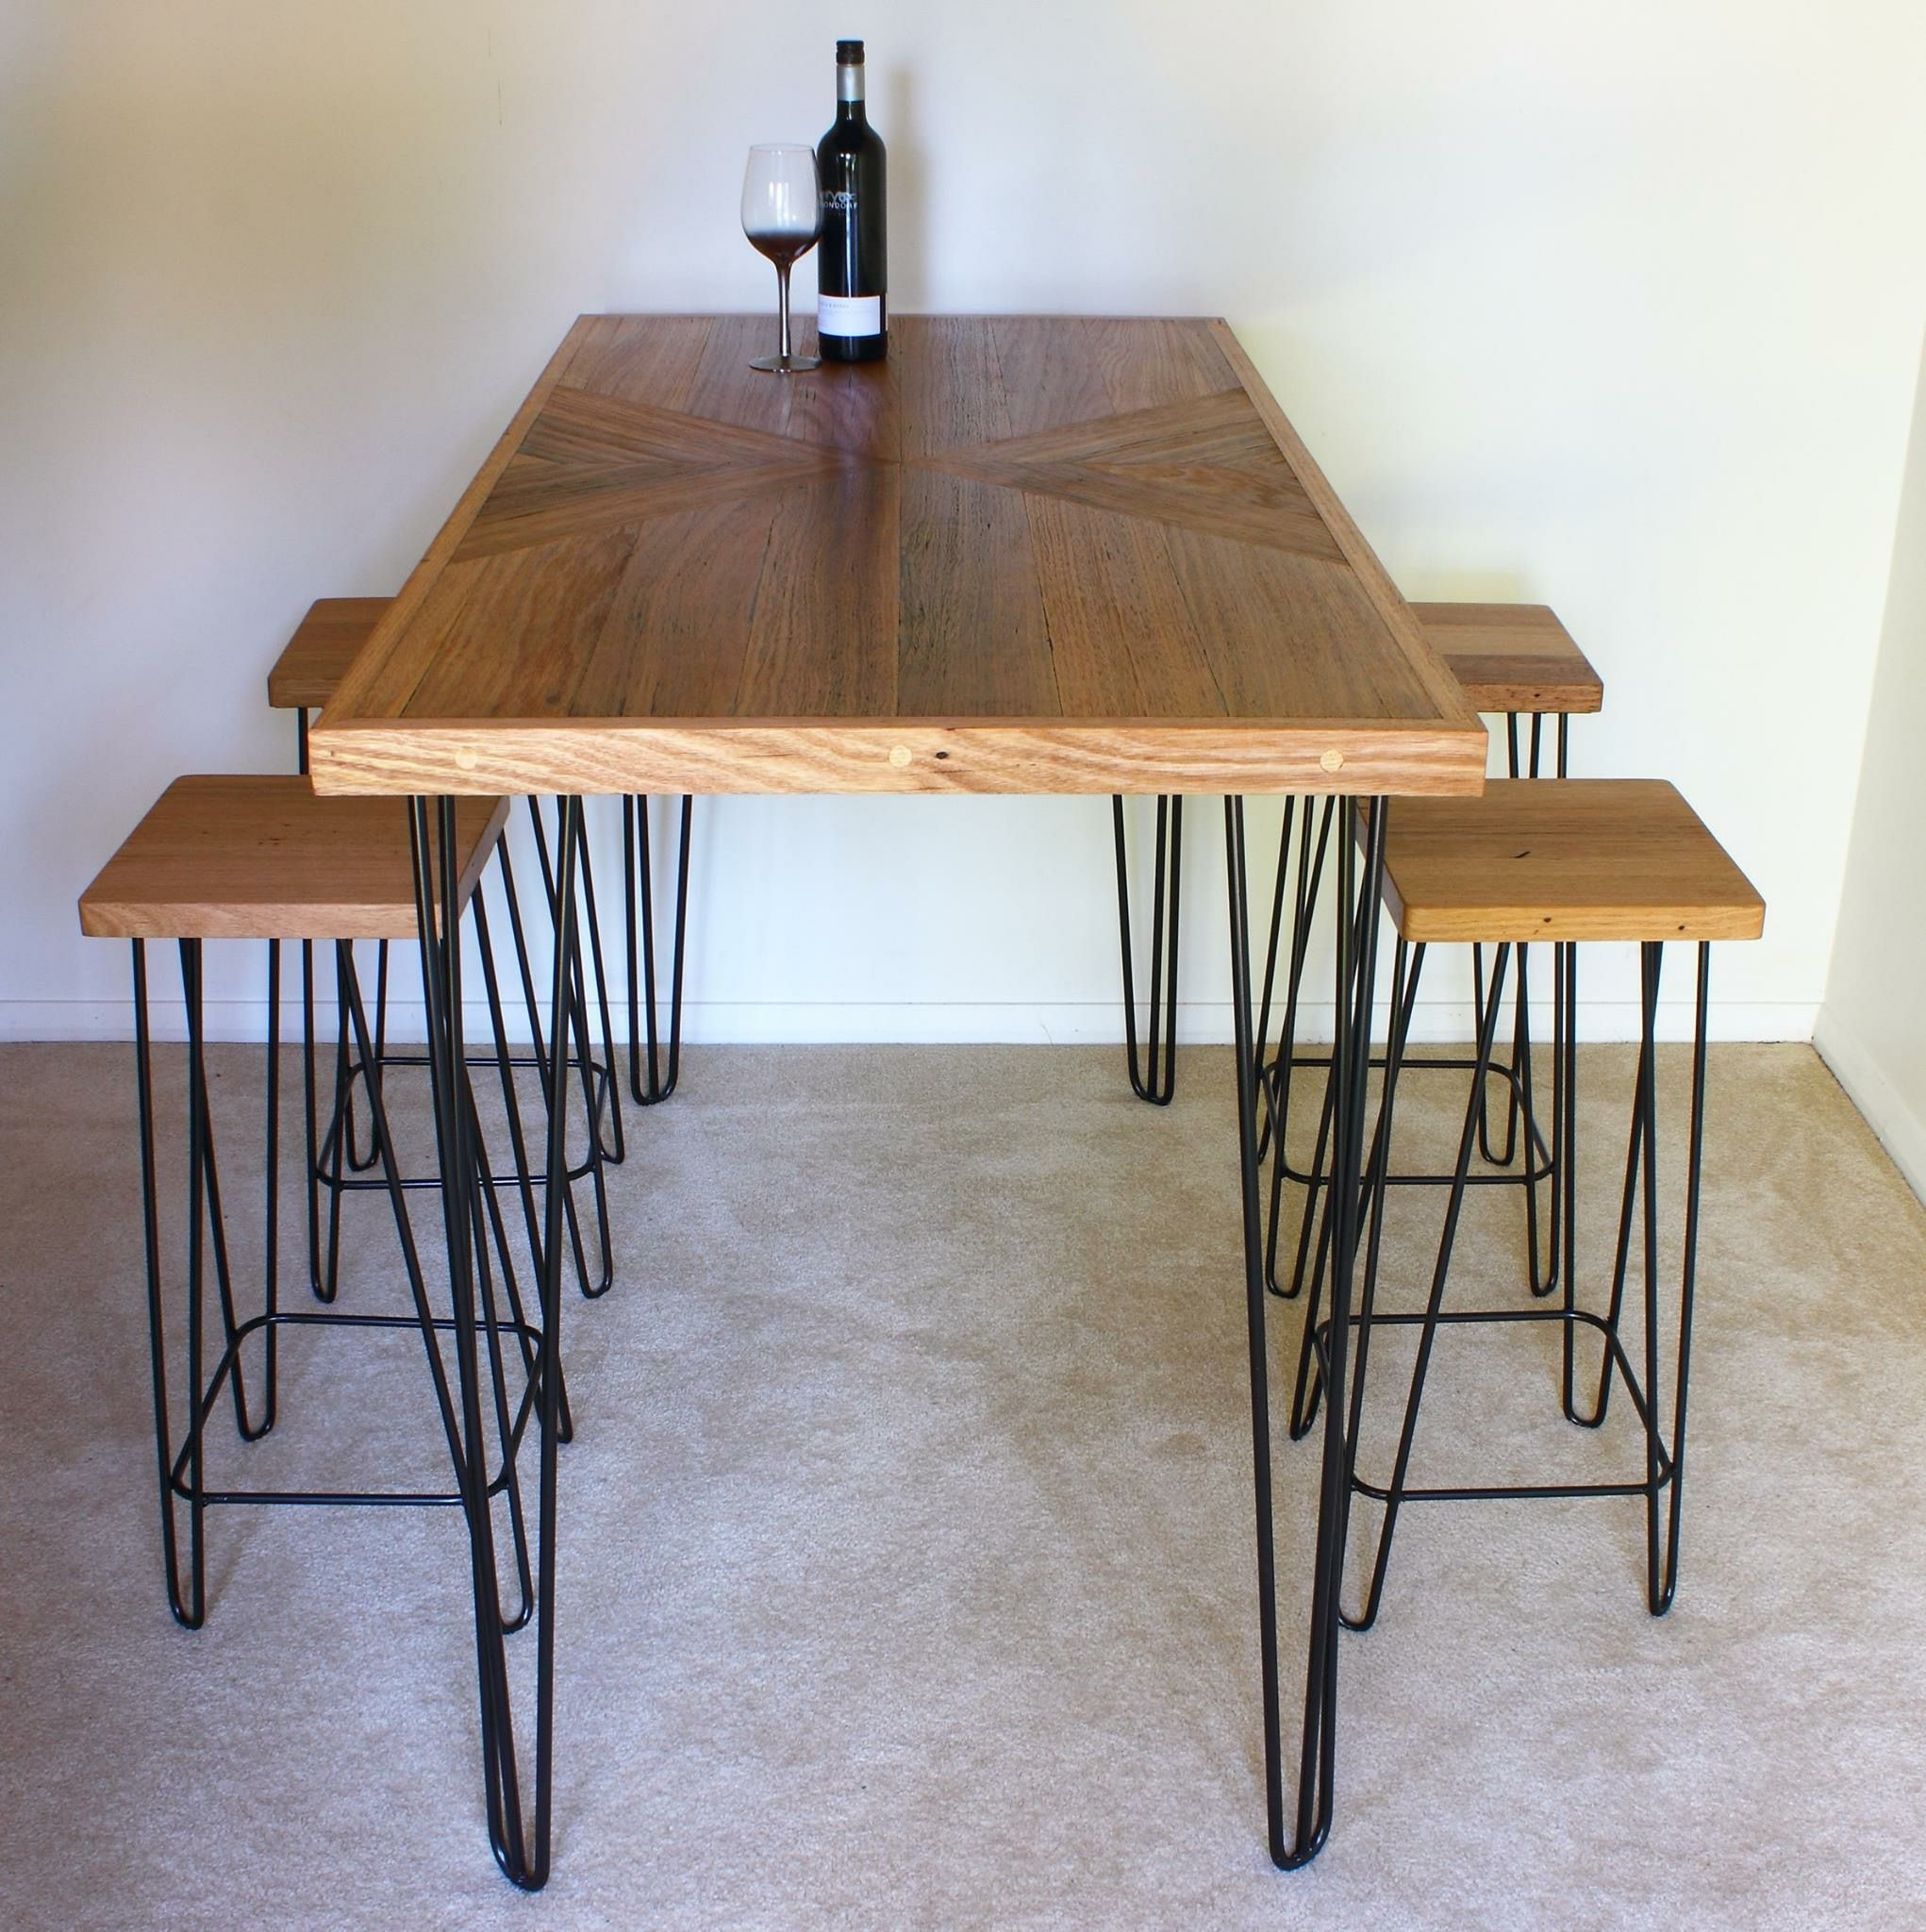 Steel Coffee Table Legs Brisbane: Table, Bar Ve Hairpin Legs